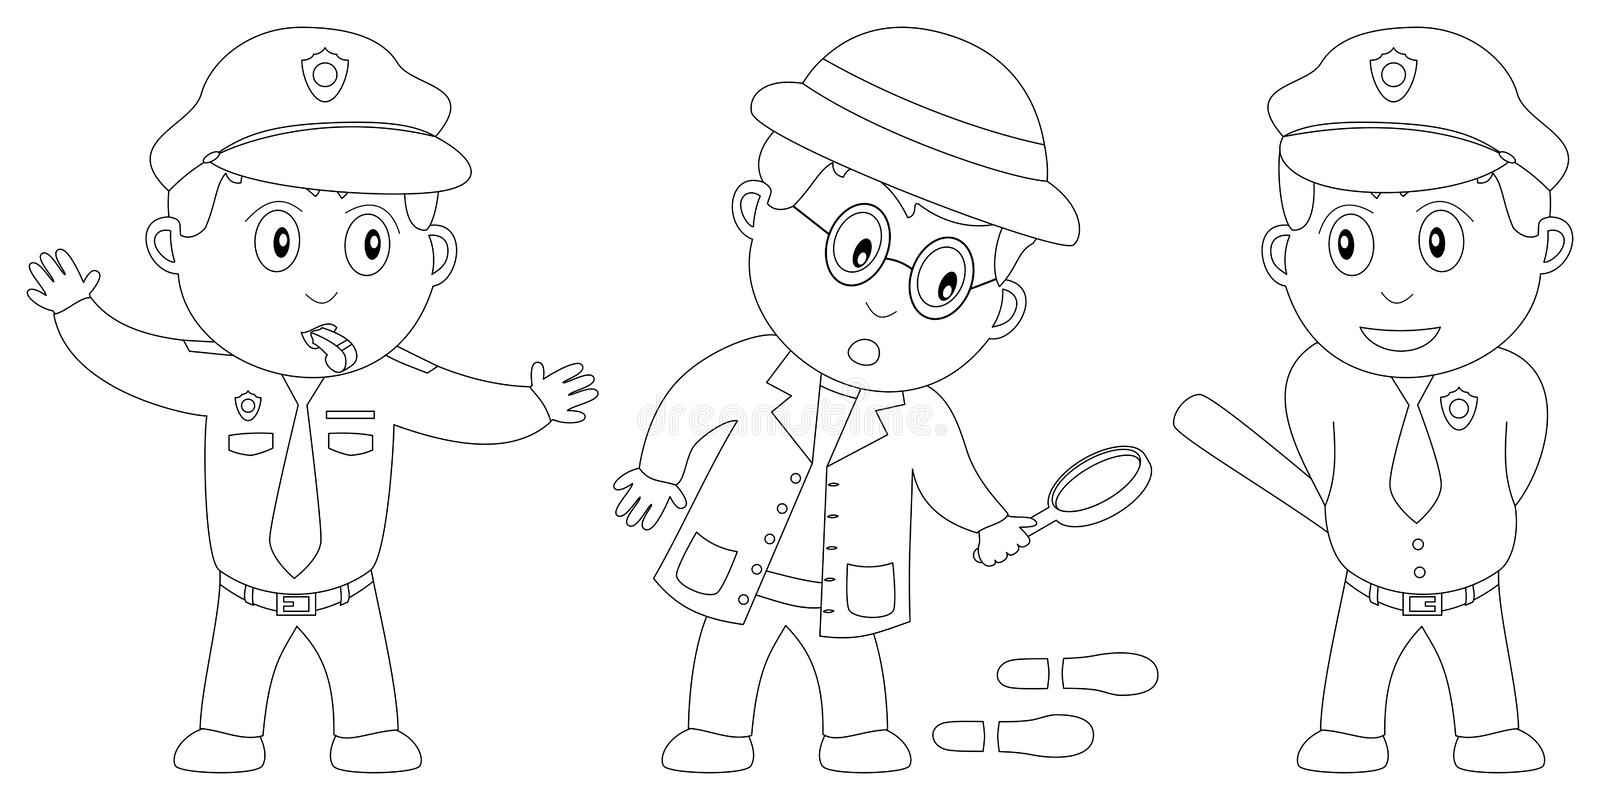 Coloring Book for Kids [8] vector illustration